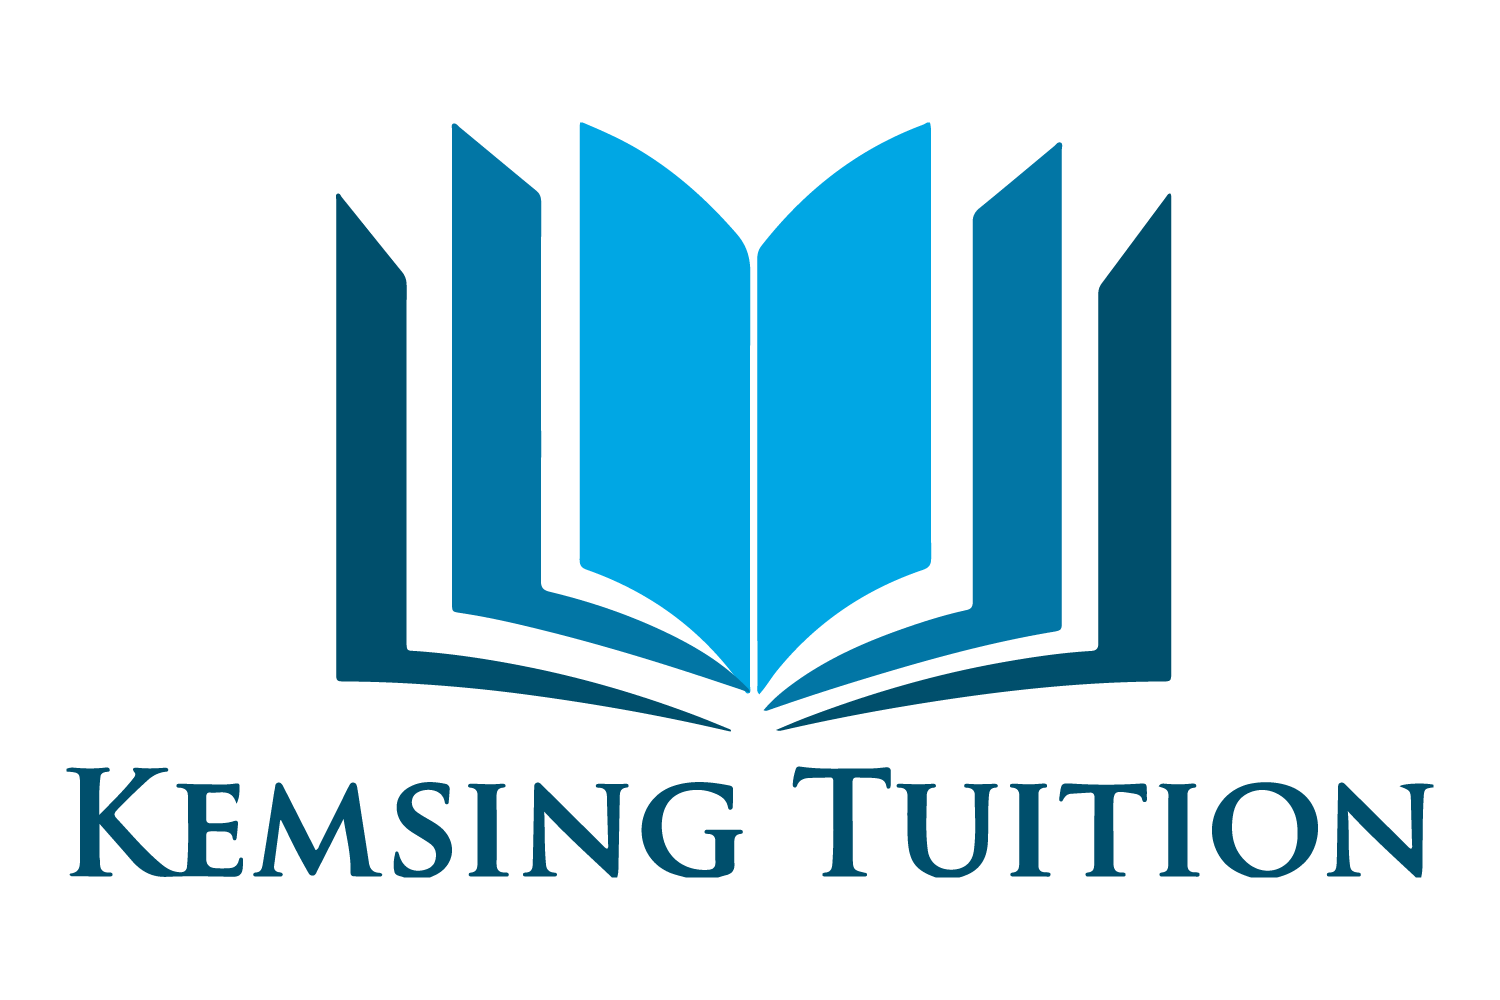 Kemsing Tuition